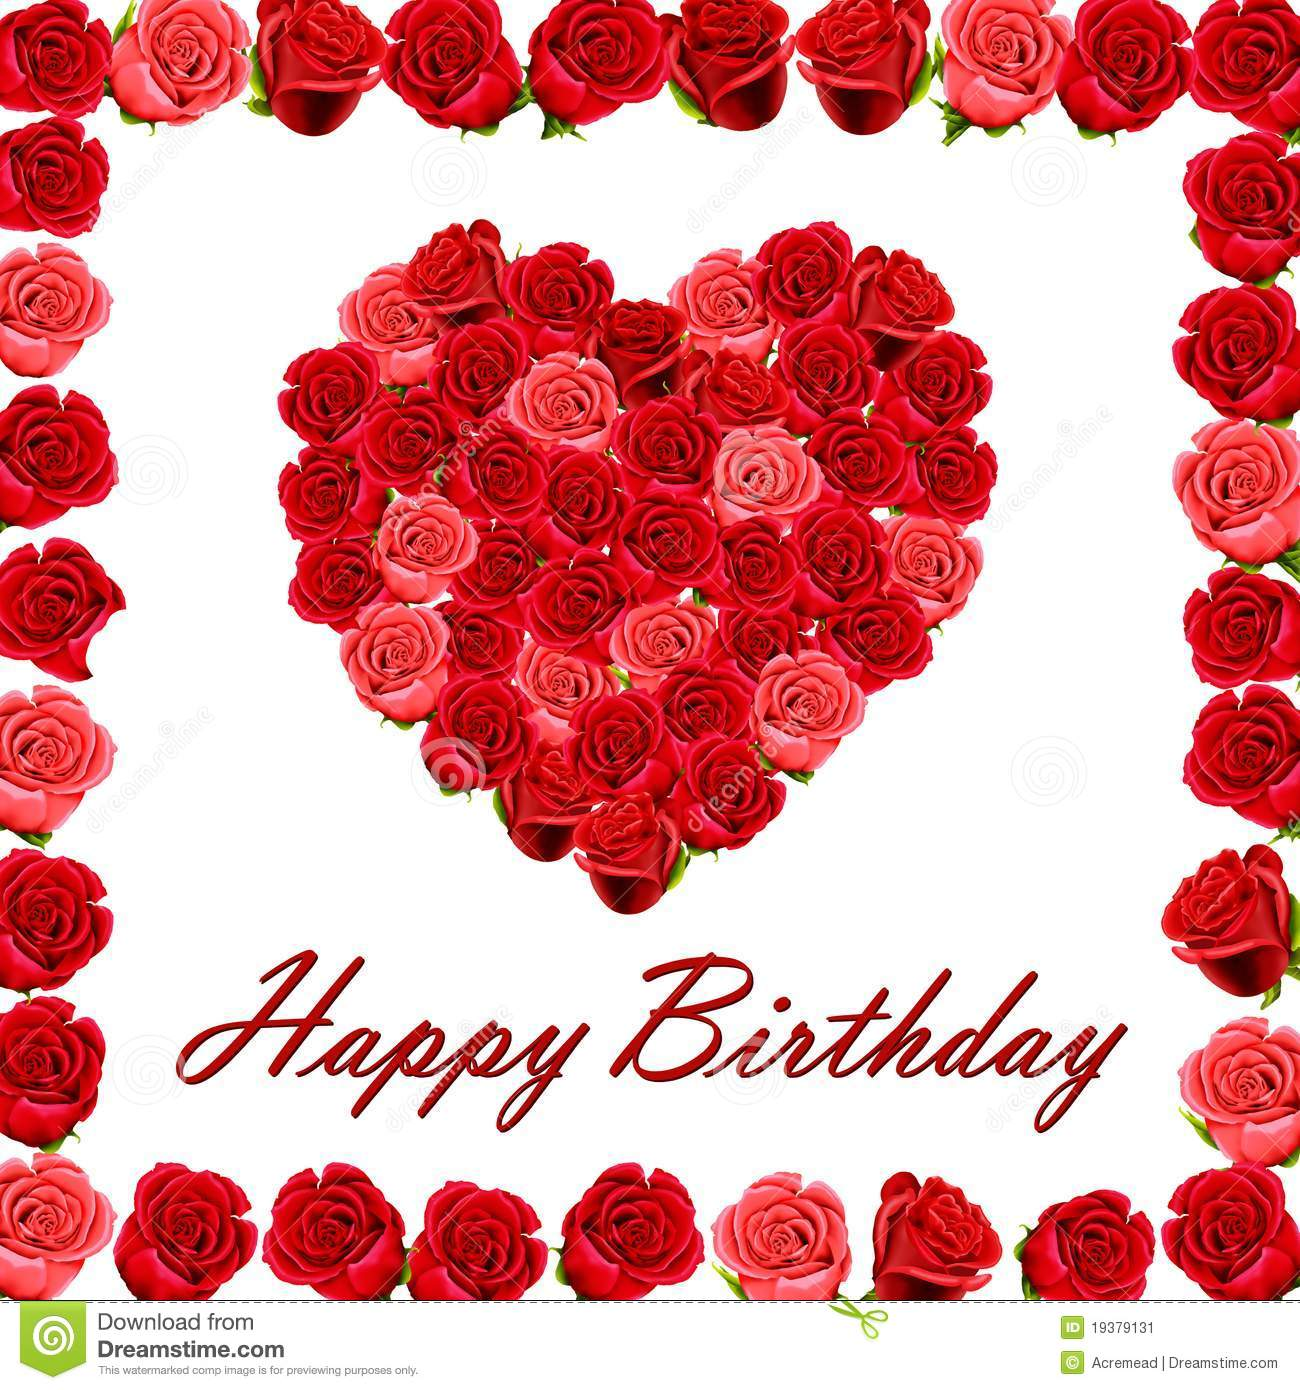 More Similar Stock Images Of   Happy Birthday With A Heart Of Roses